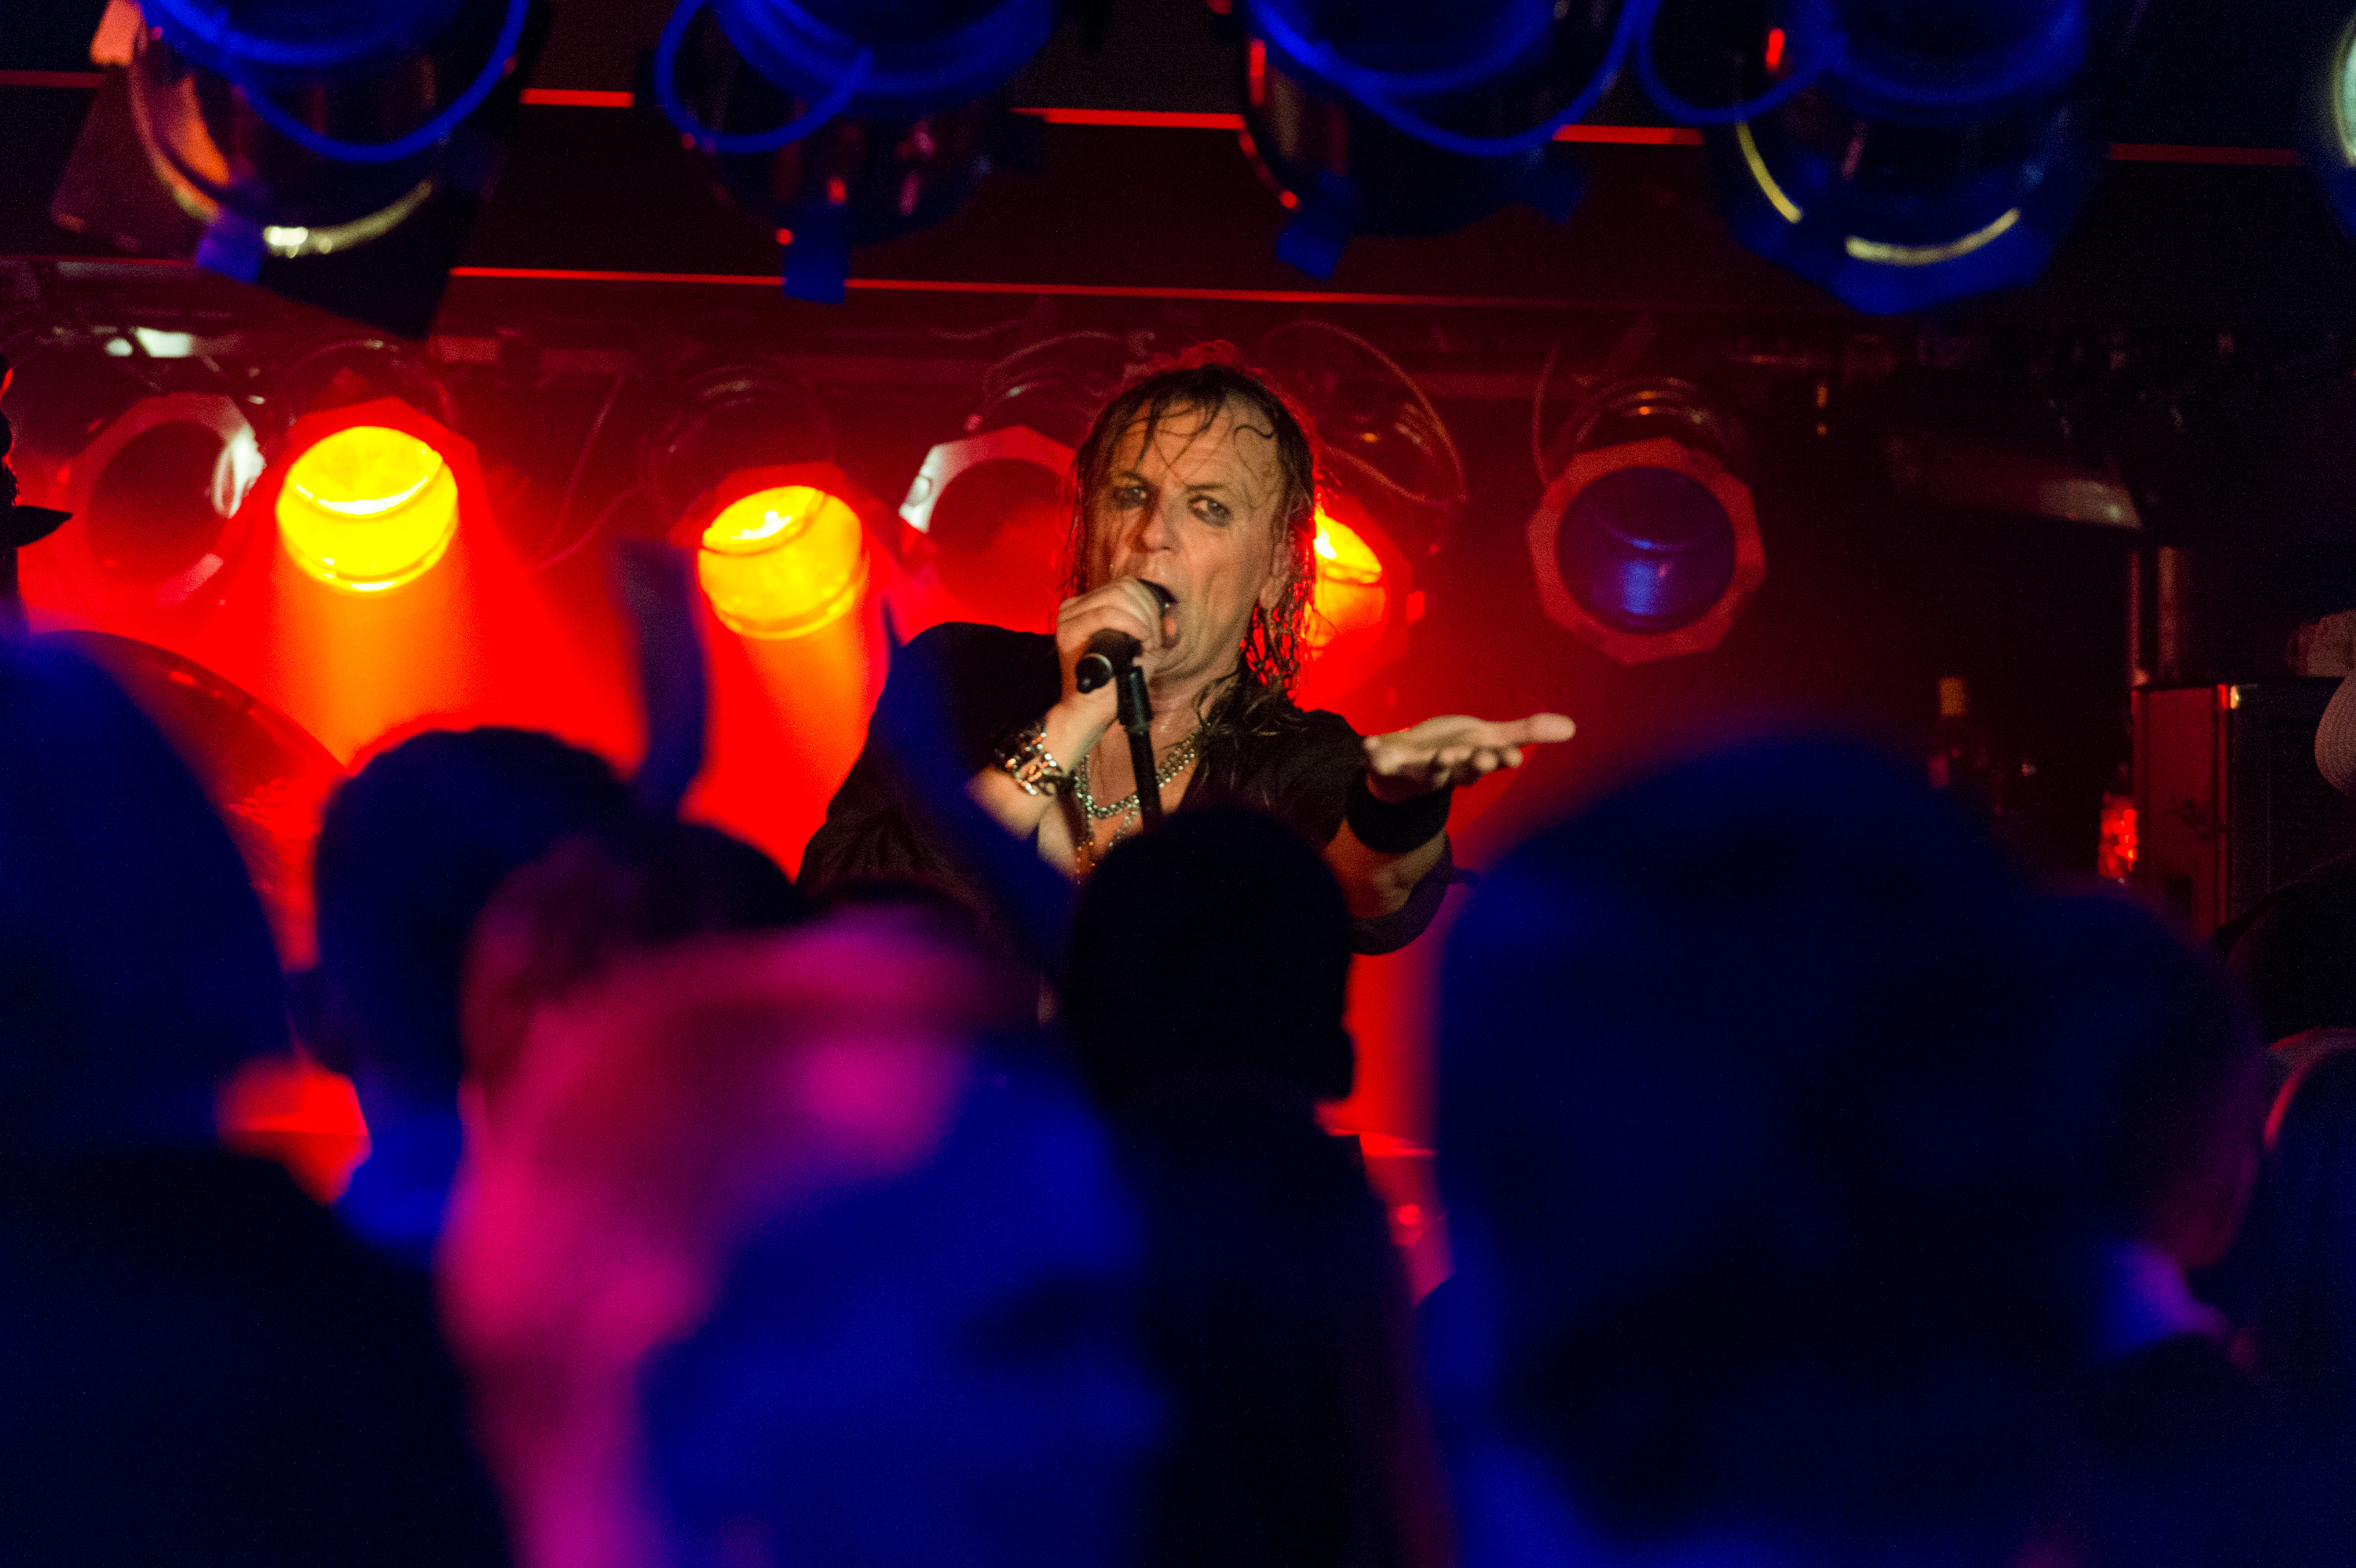 Pretty Maids på Walthers Musik Cafe